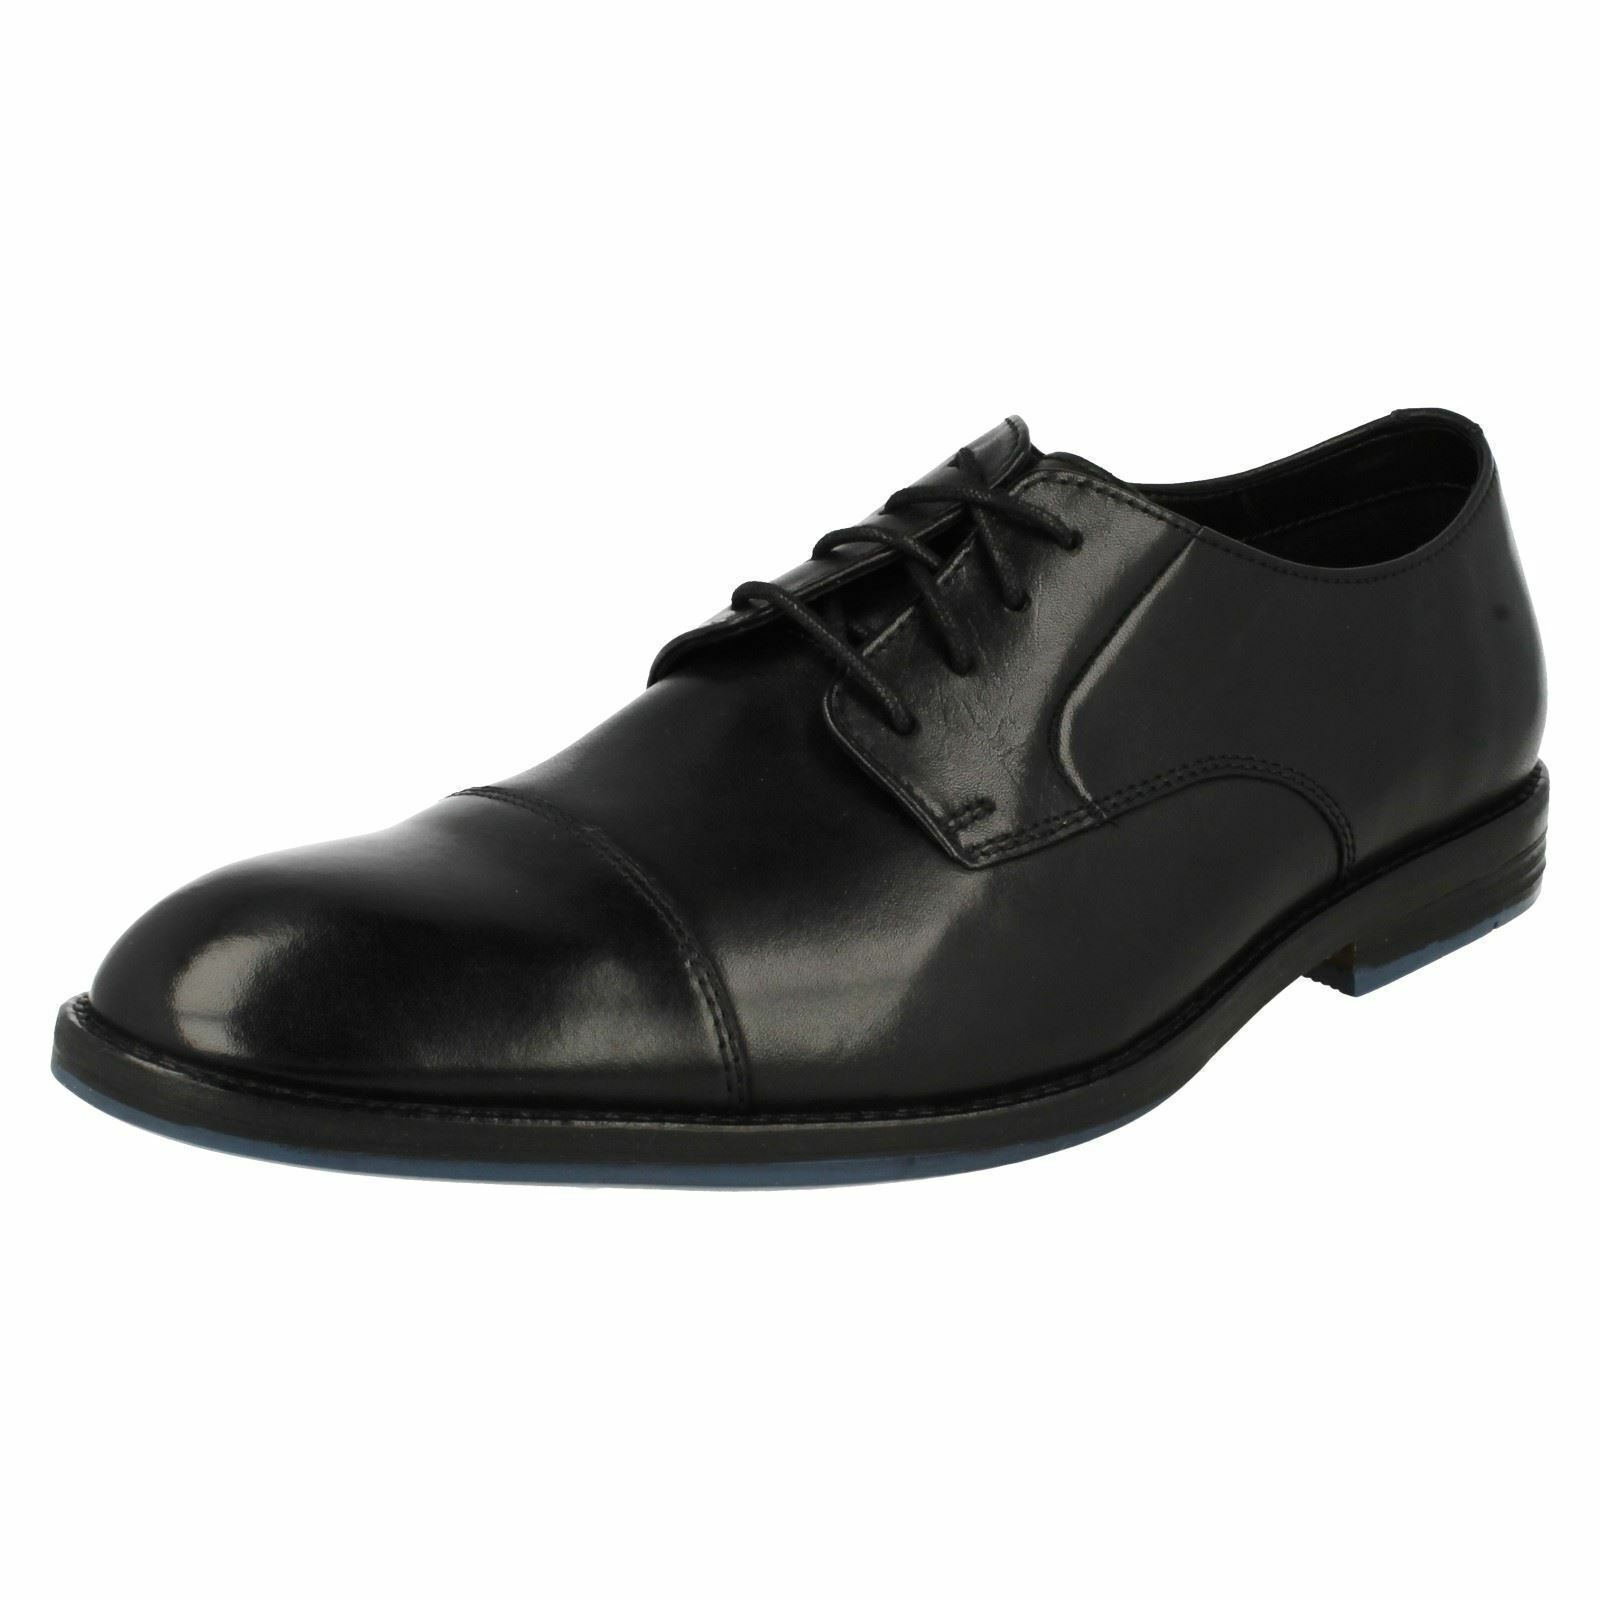 MENS CLARKS TOE CAP LEATHER SMART FORMAL PARTY LACE UP SHOES SIZE PRANGLEY CAP